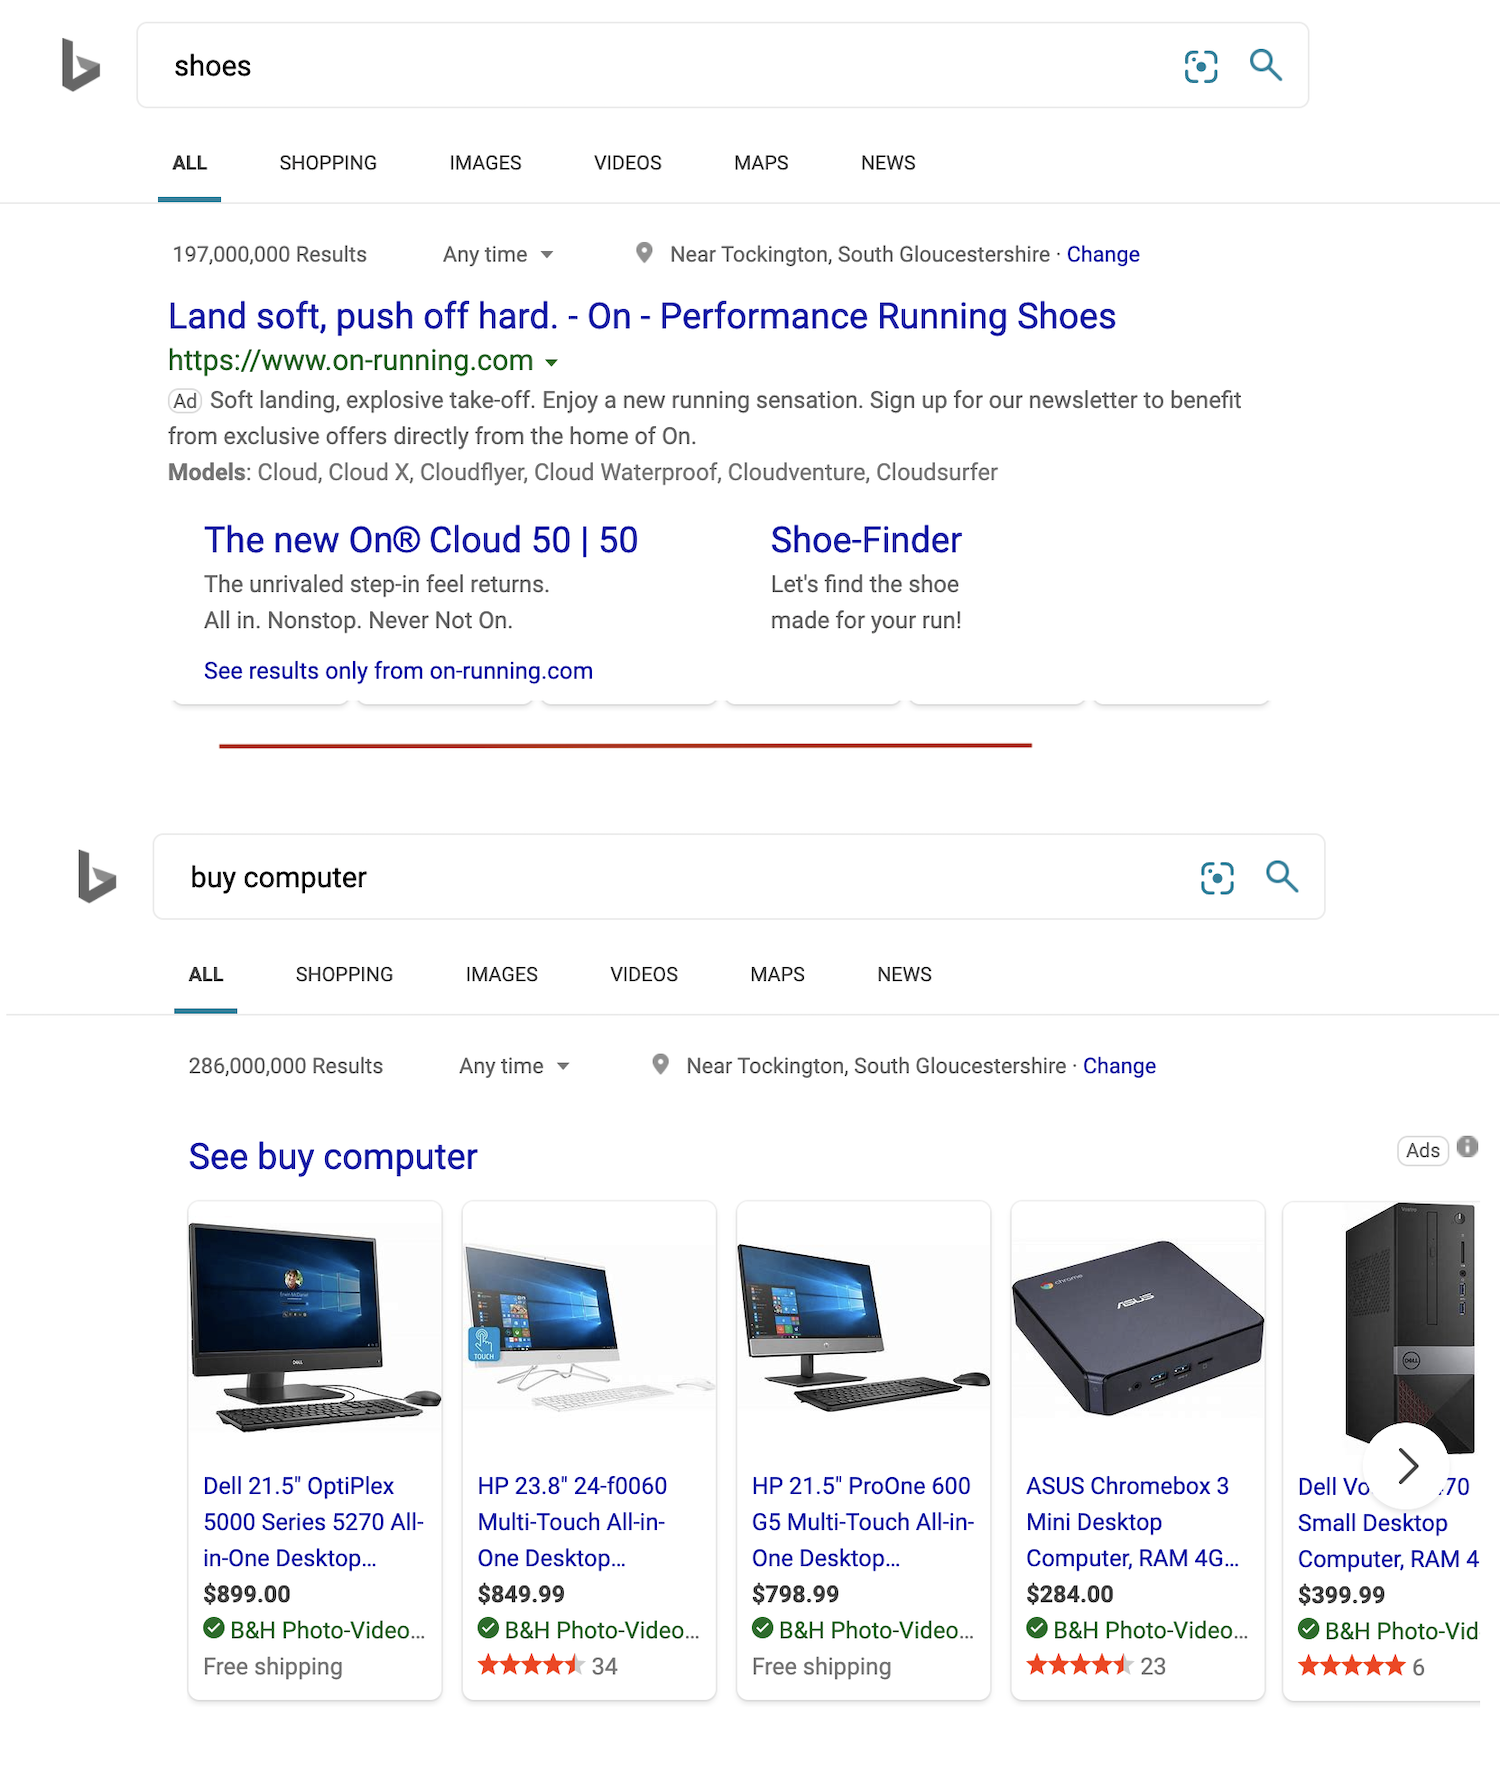 Ads on Bing SERP